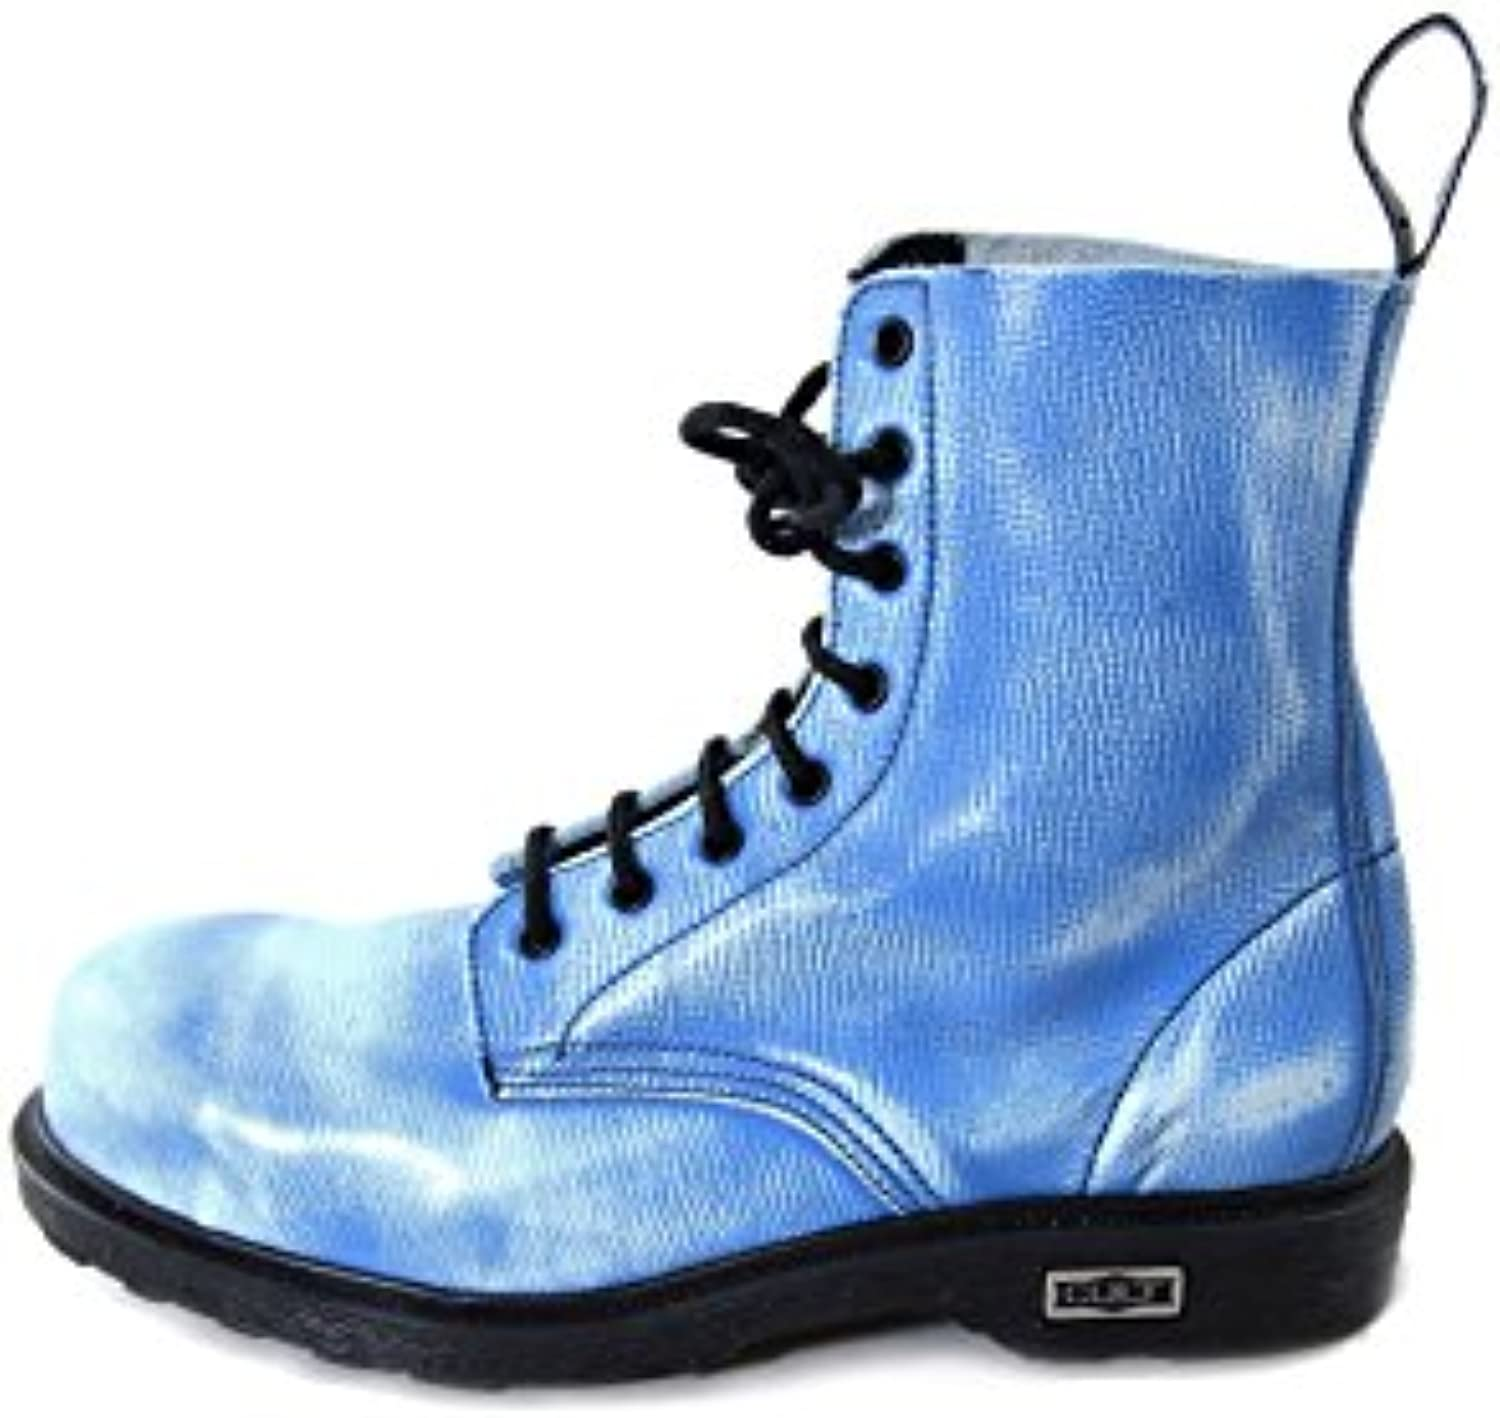 Cult Bolt Strike Vintage Leather Boots with Steel Toe Blue and White